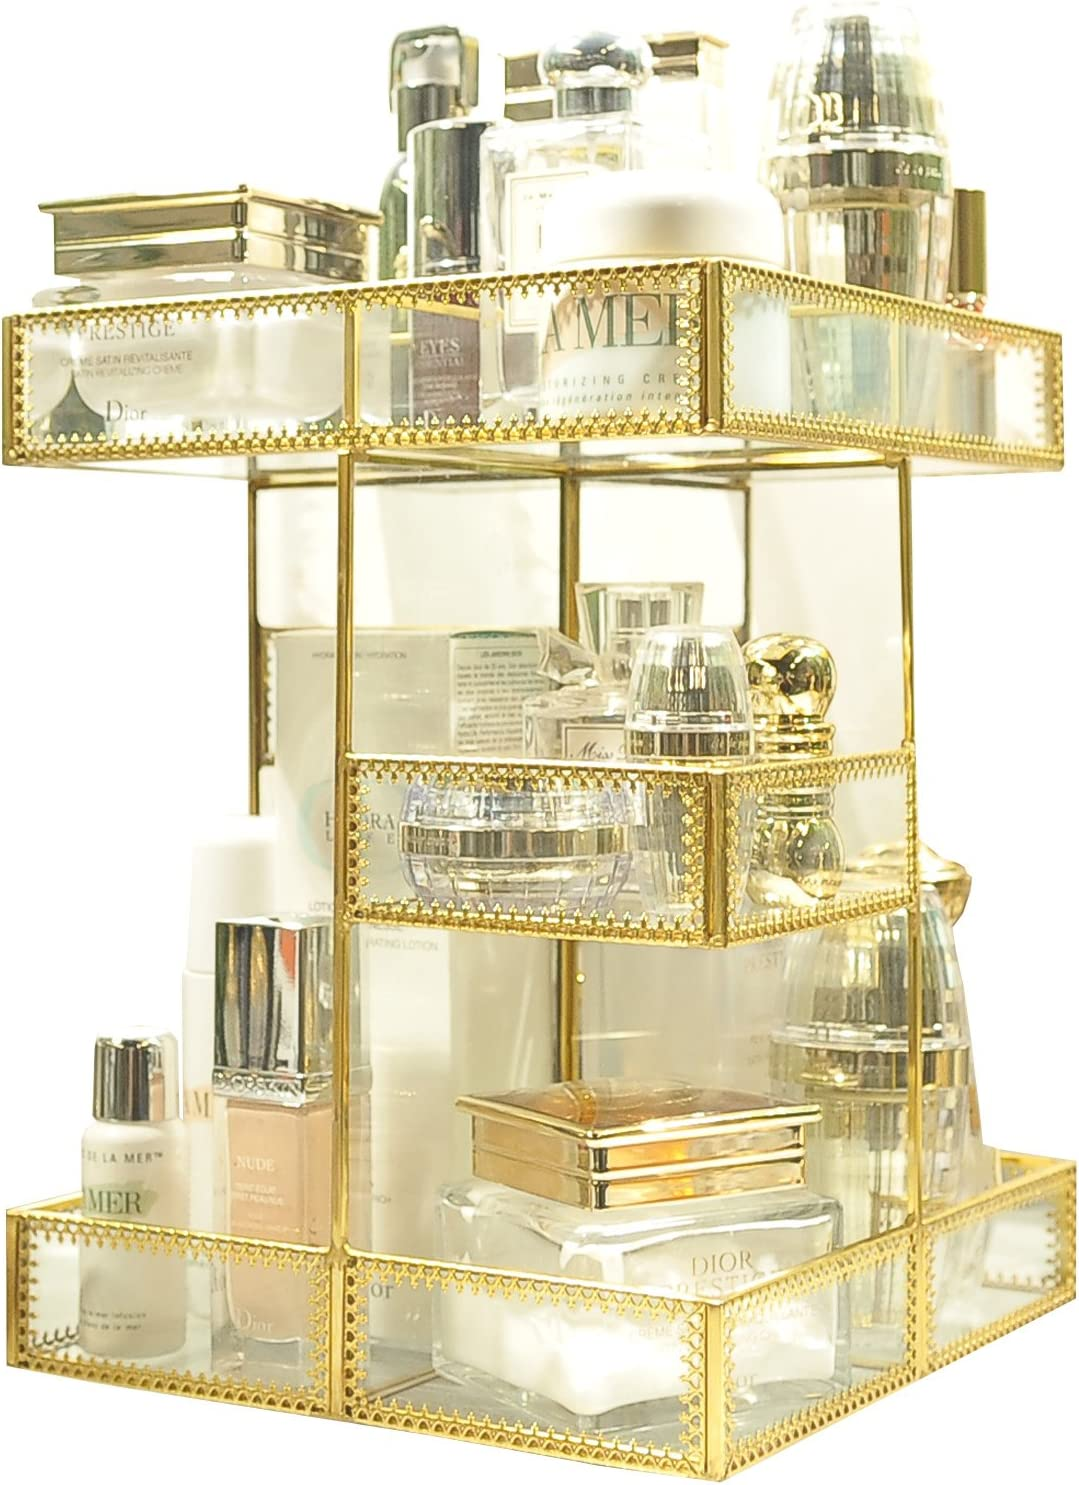 360 Degree Rotation Makeup Organizer Antique Countertop Cosmetic Storage Box Mirror Glass Beauty Display, Gold Spin Large Capacity Holder for Brushes Lipsticks Skincare Toner 81sbT2Byu2BnLSL1500_